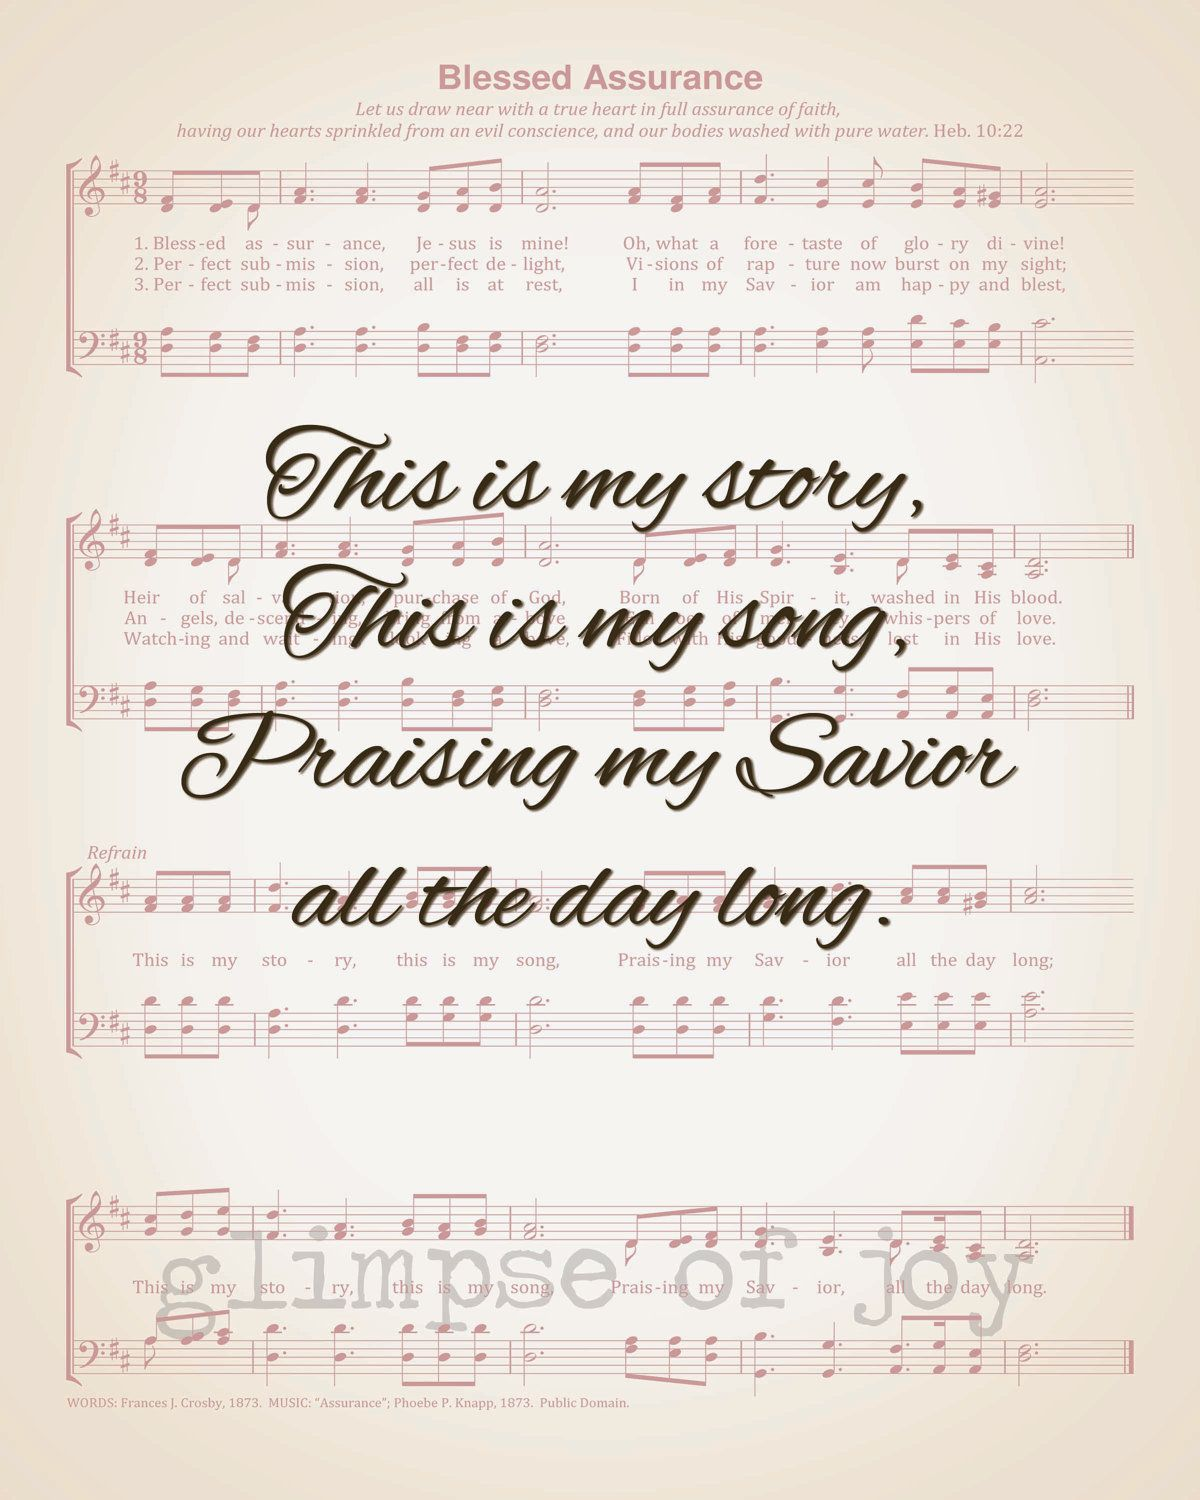 All the days of my life I will sing praise to my Lord and